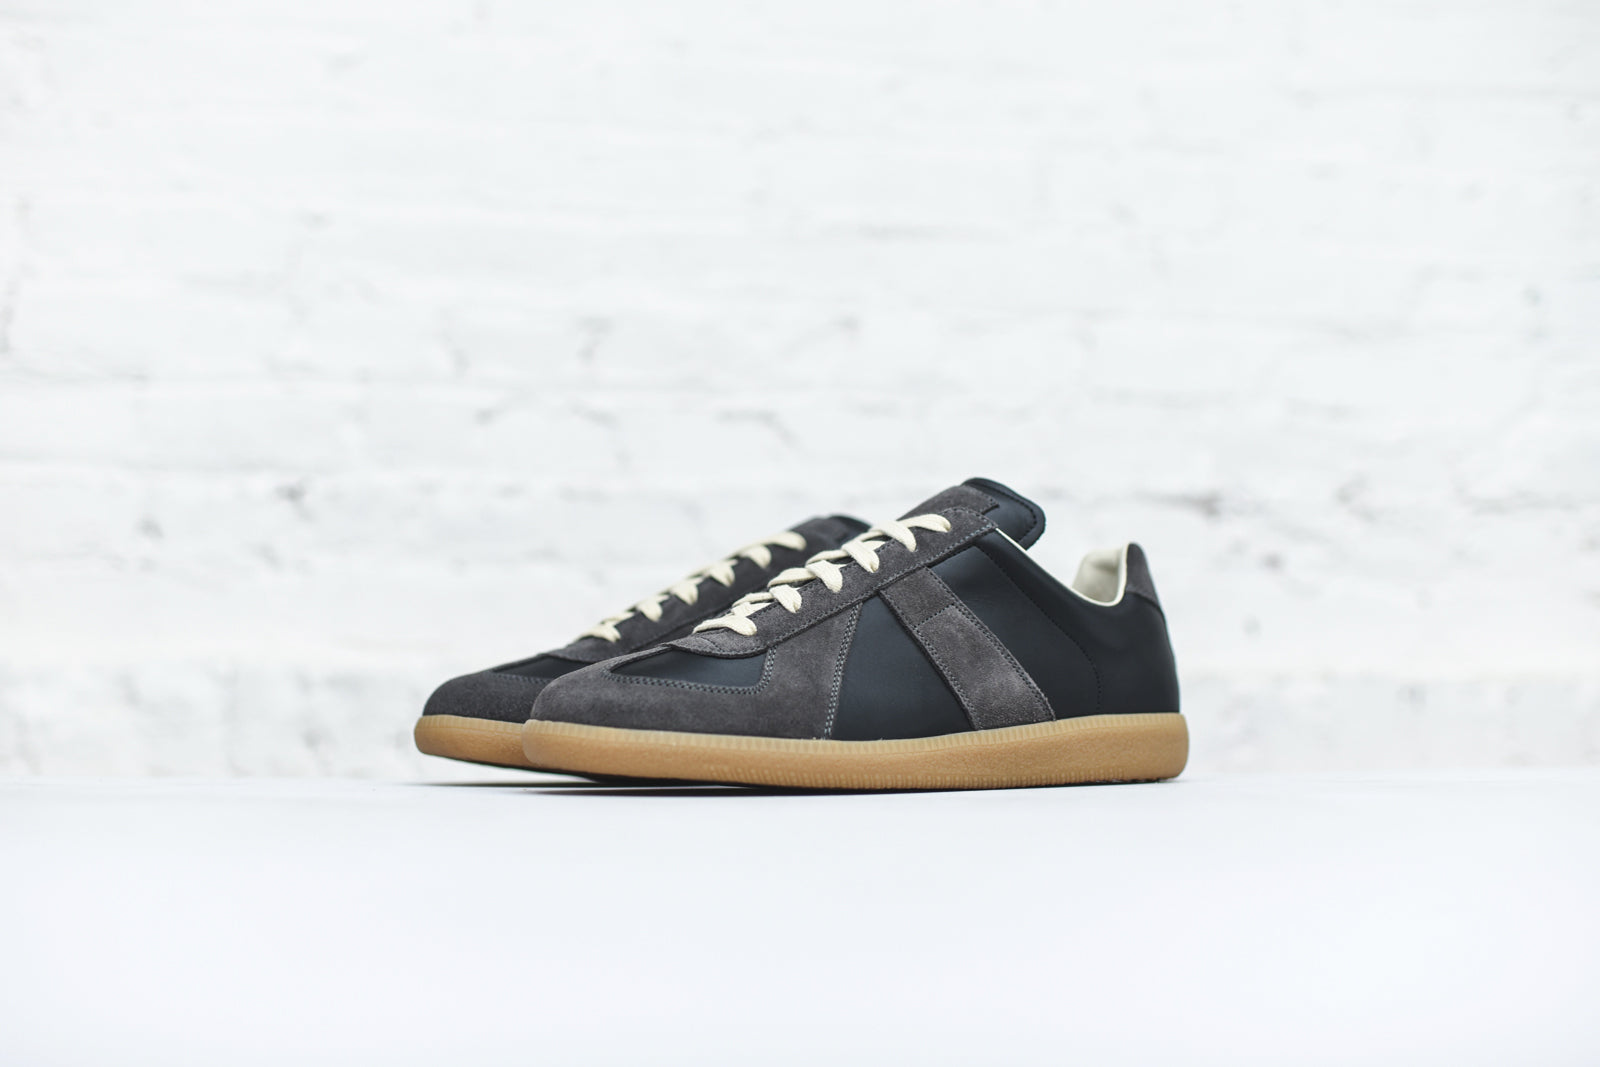 Margiela Replica Sneaker - Black / Amber Sole